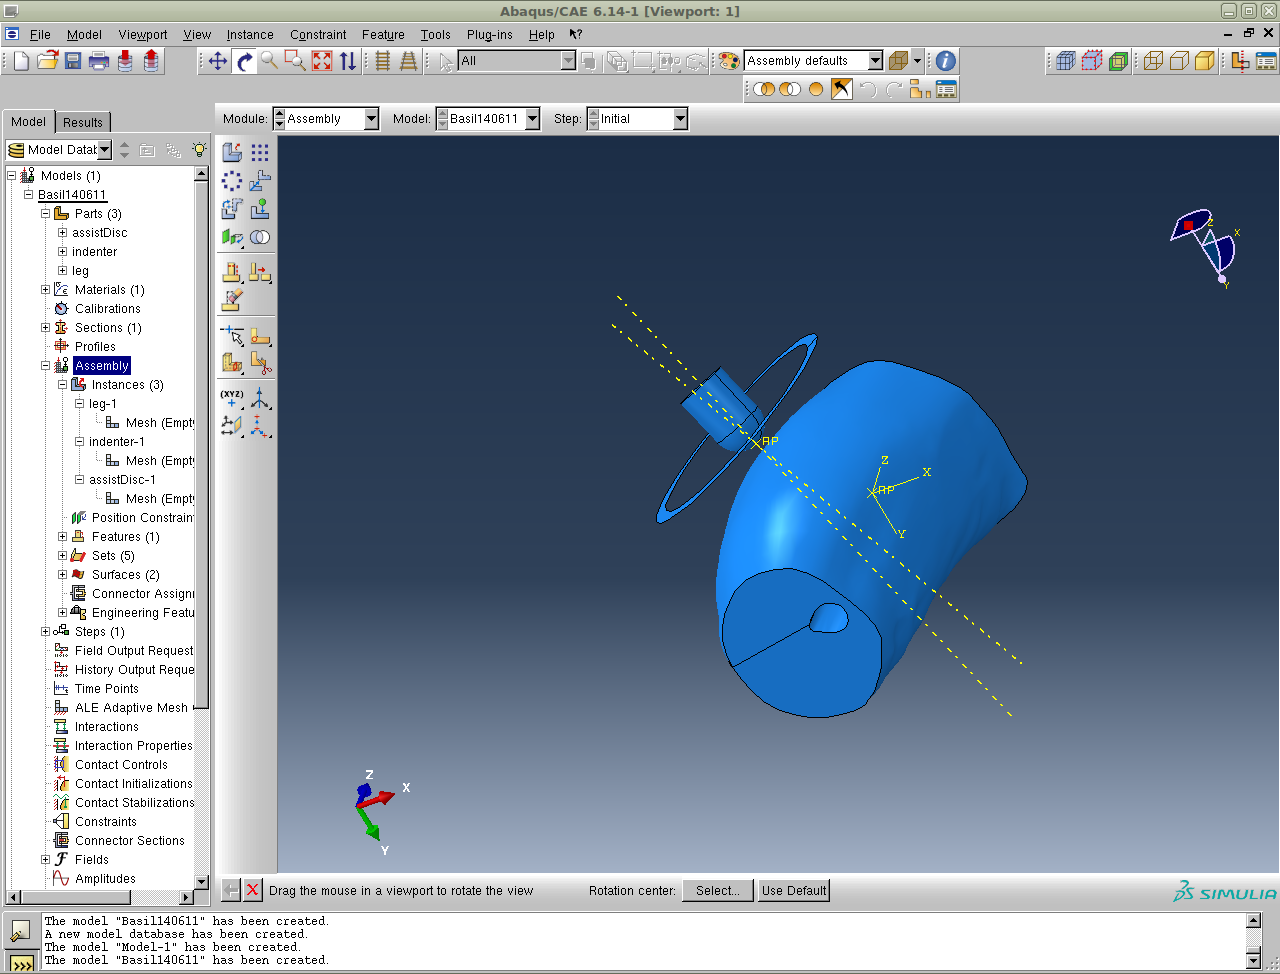 documentation/abaqus_assemblyNoCastRot.png